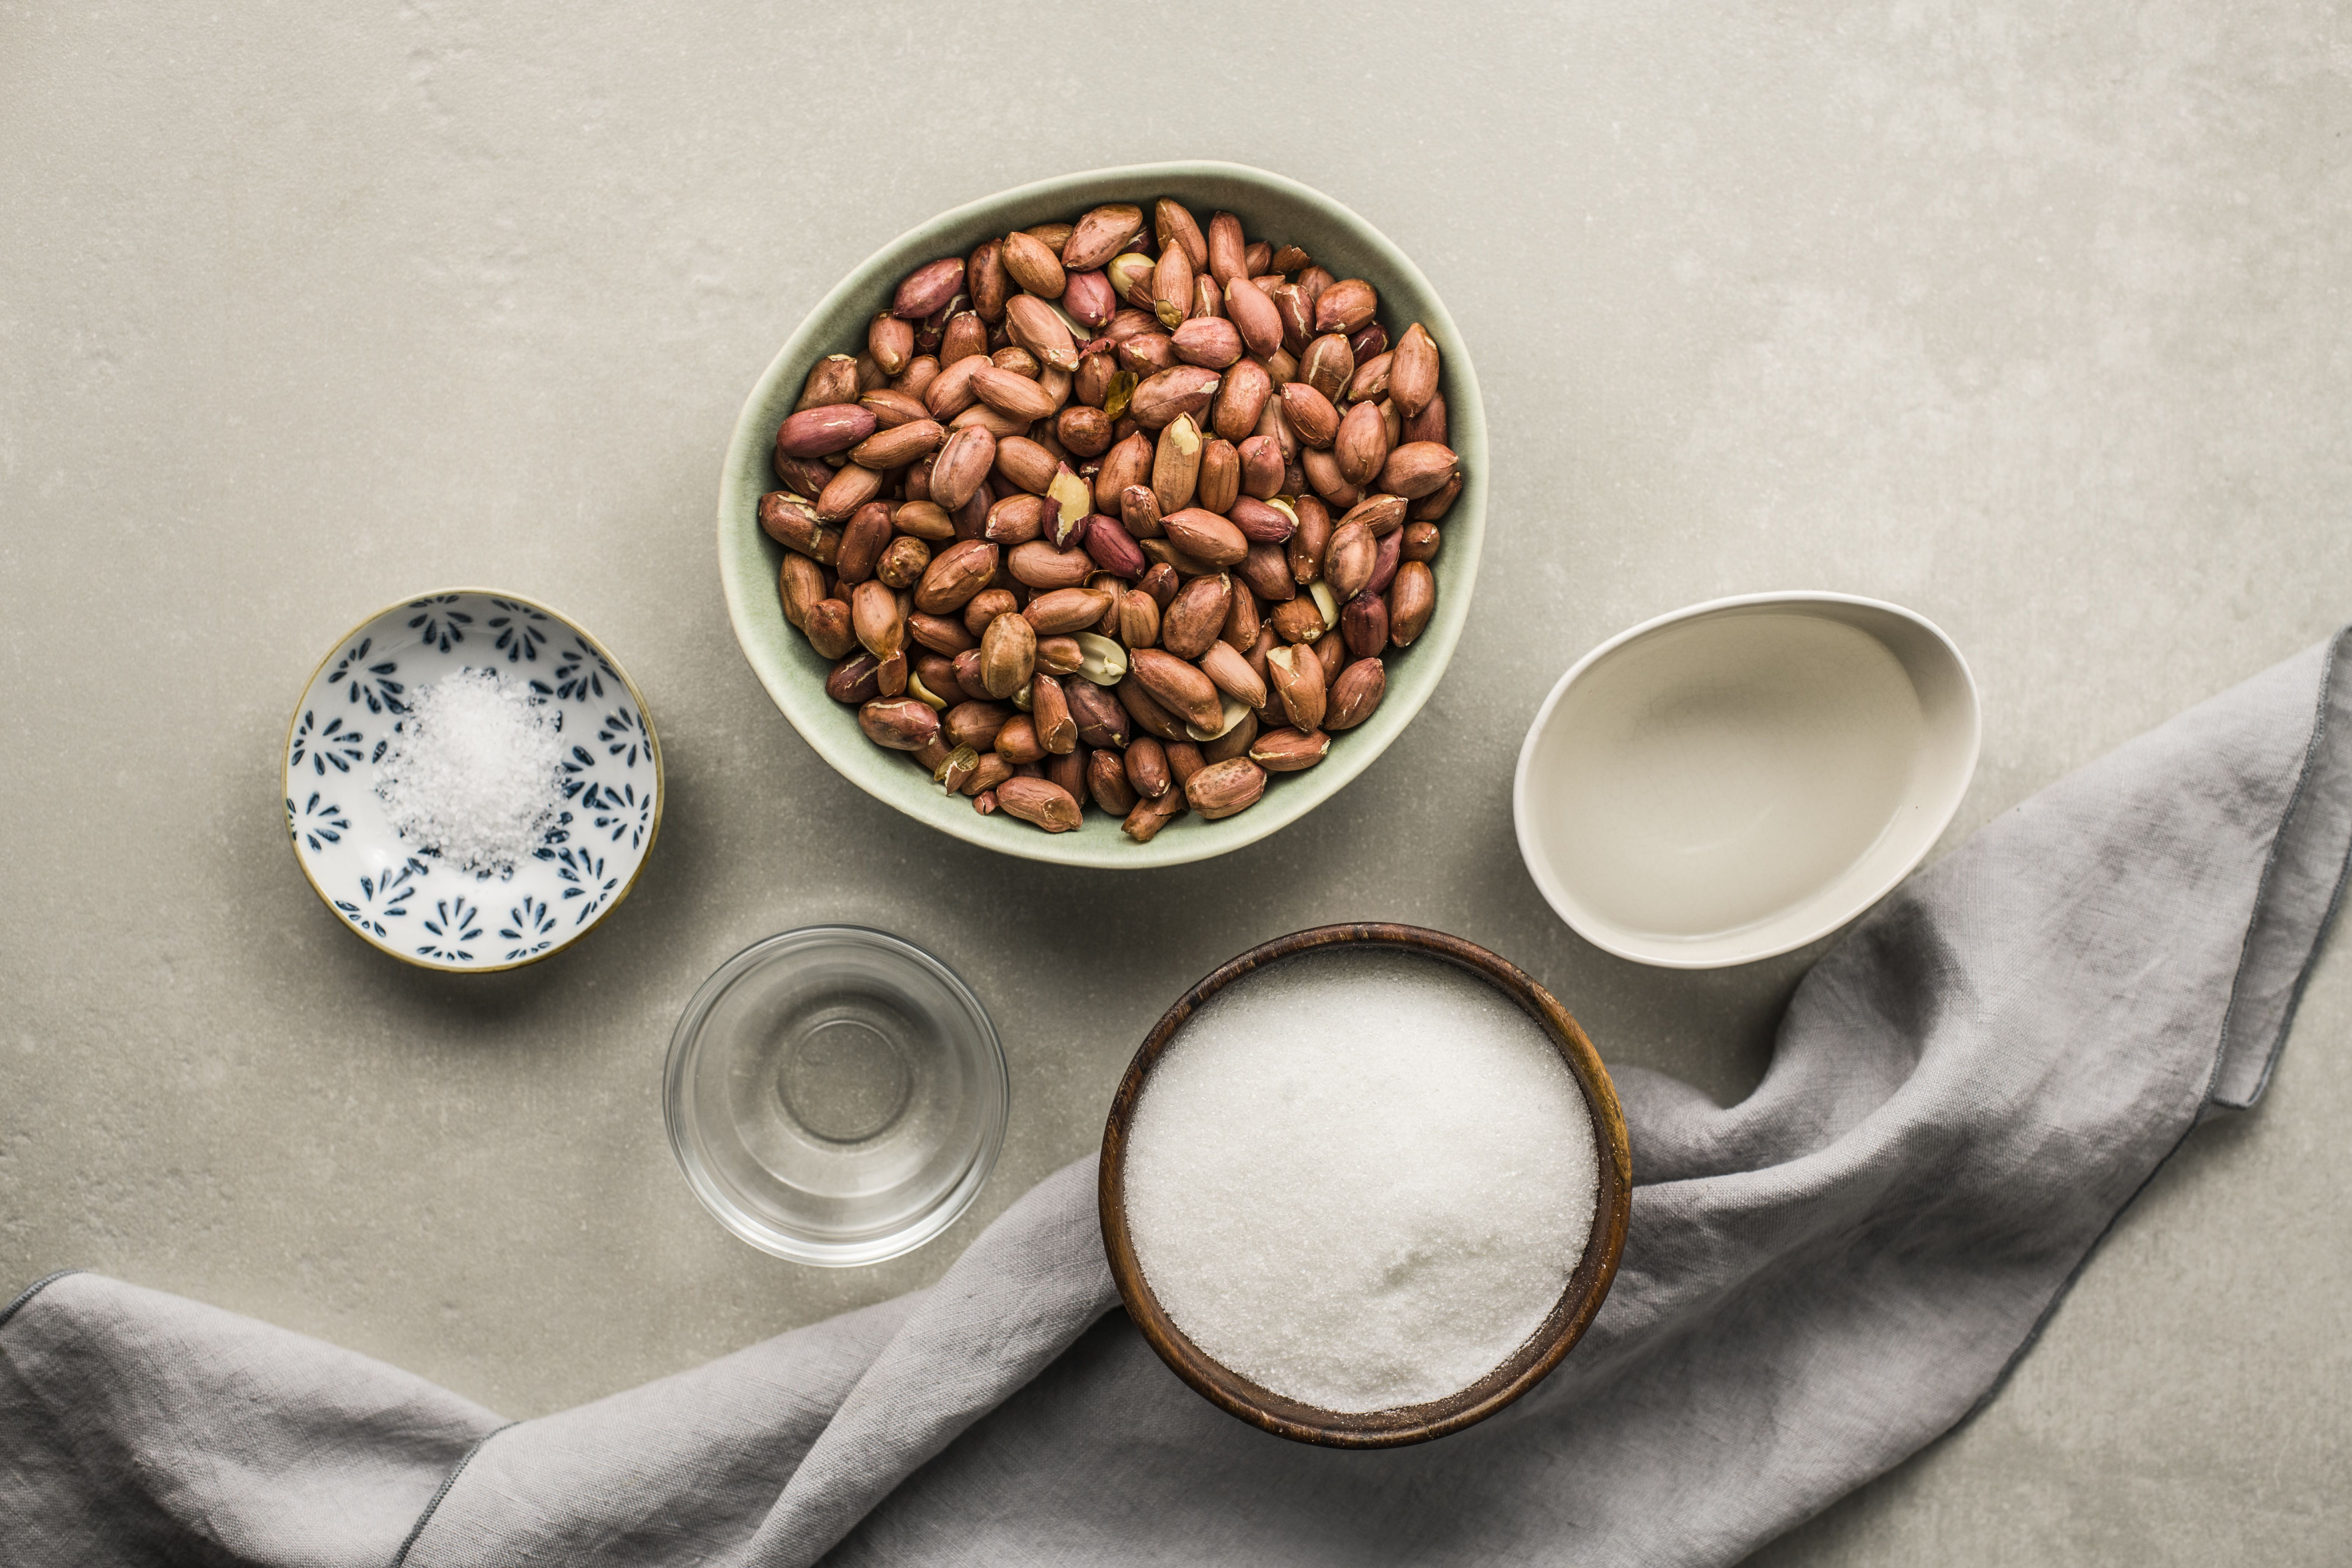 Ingredients for candied peanuts